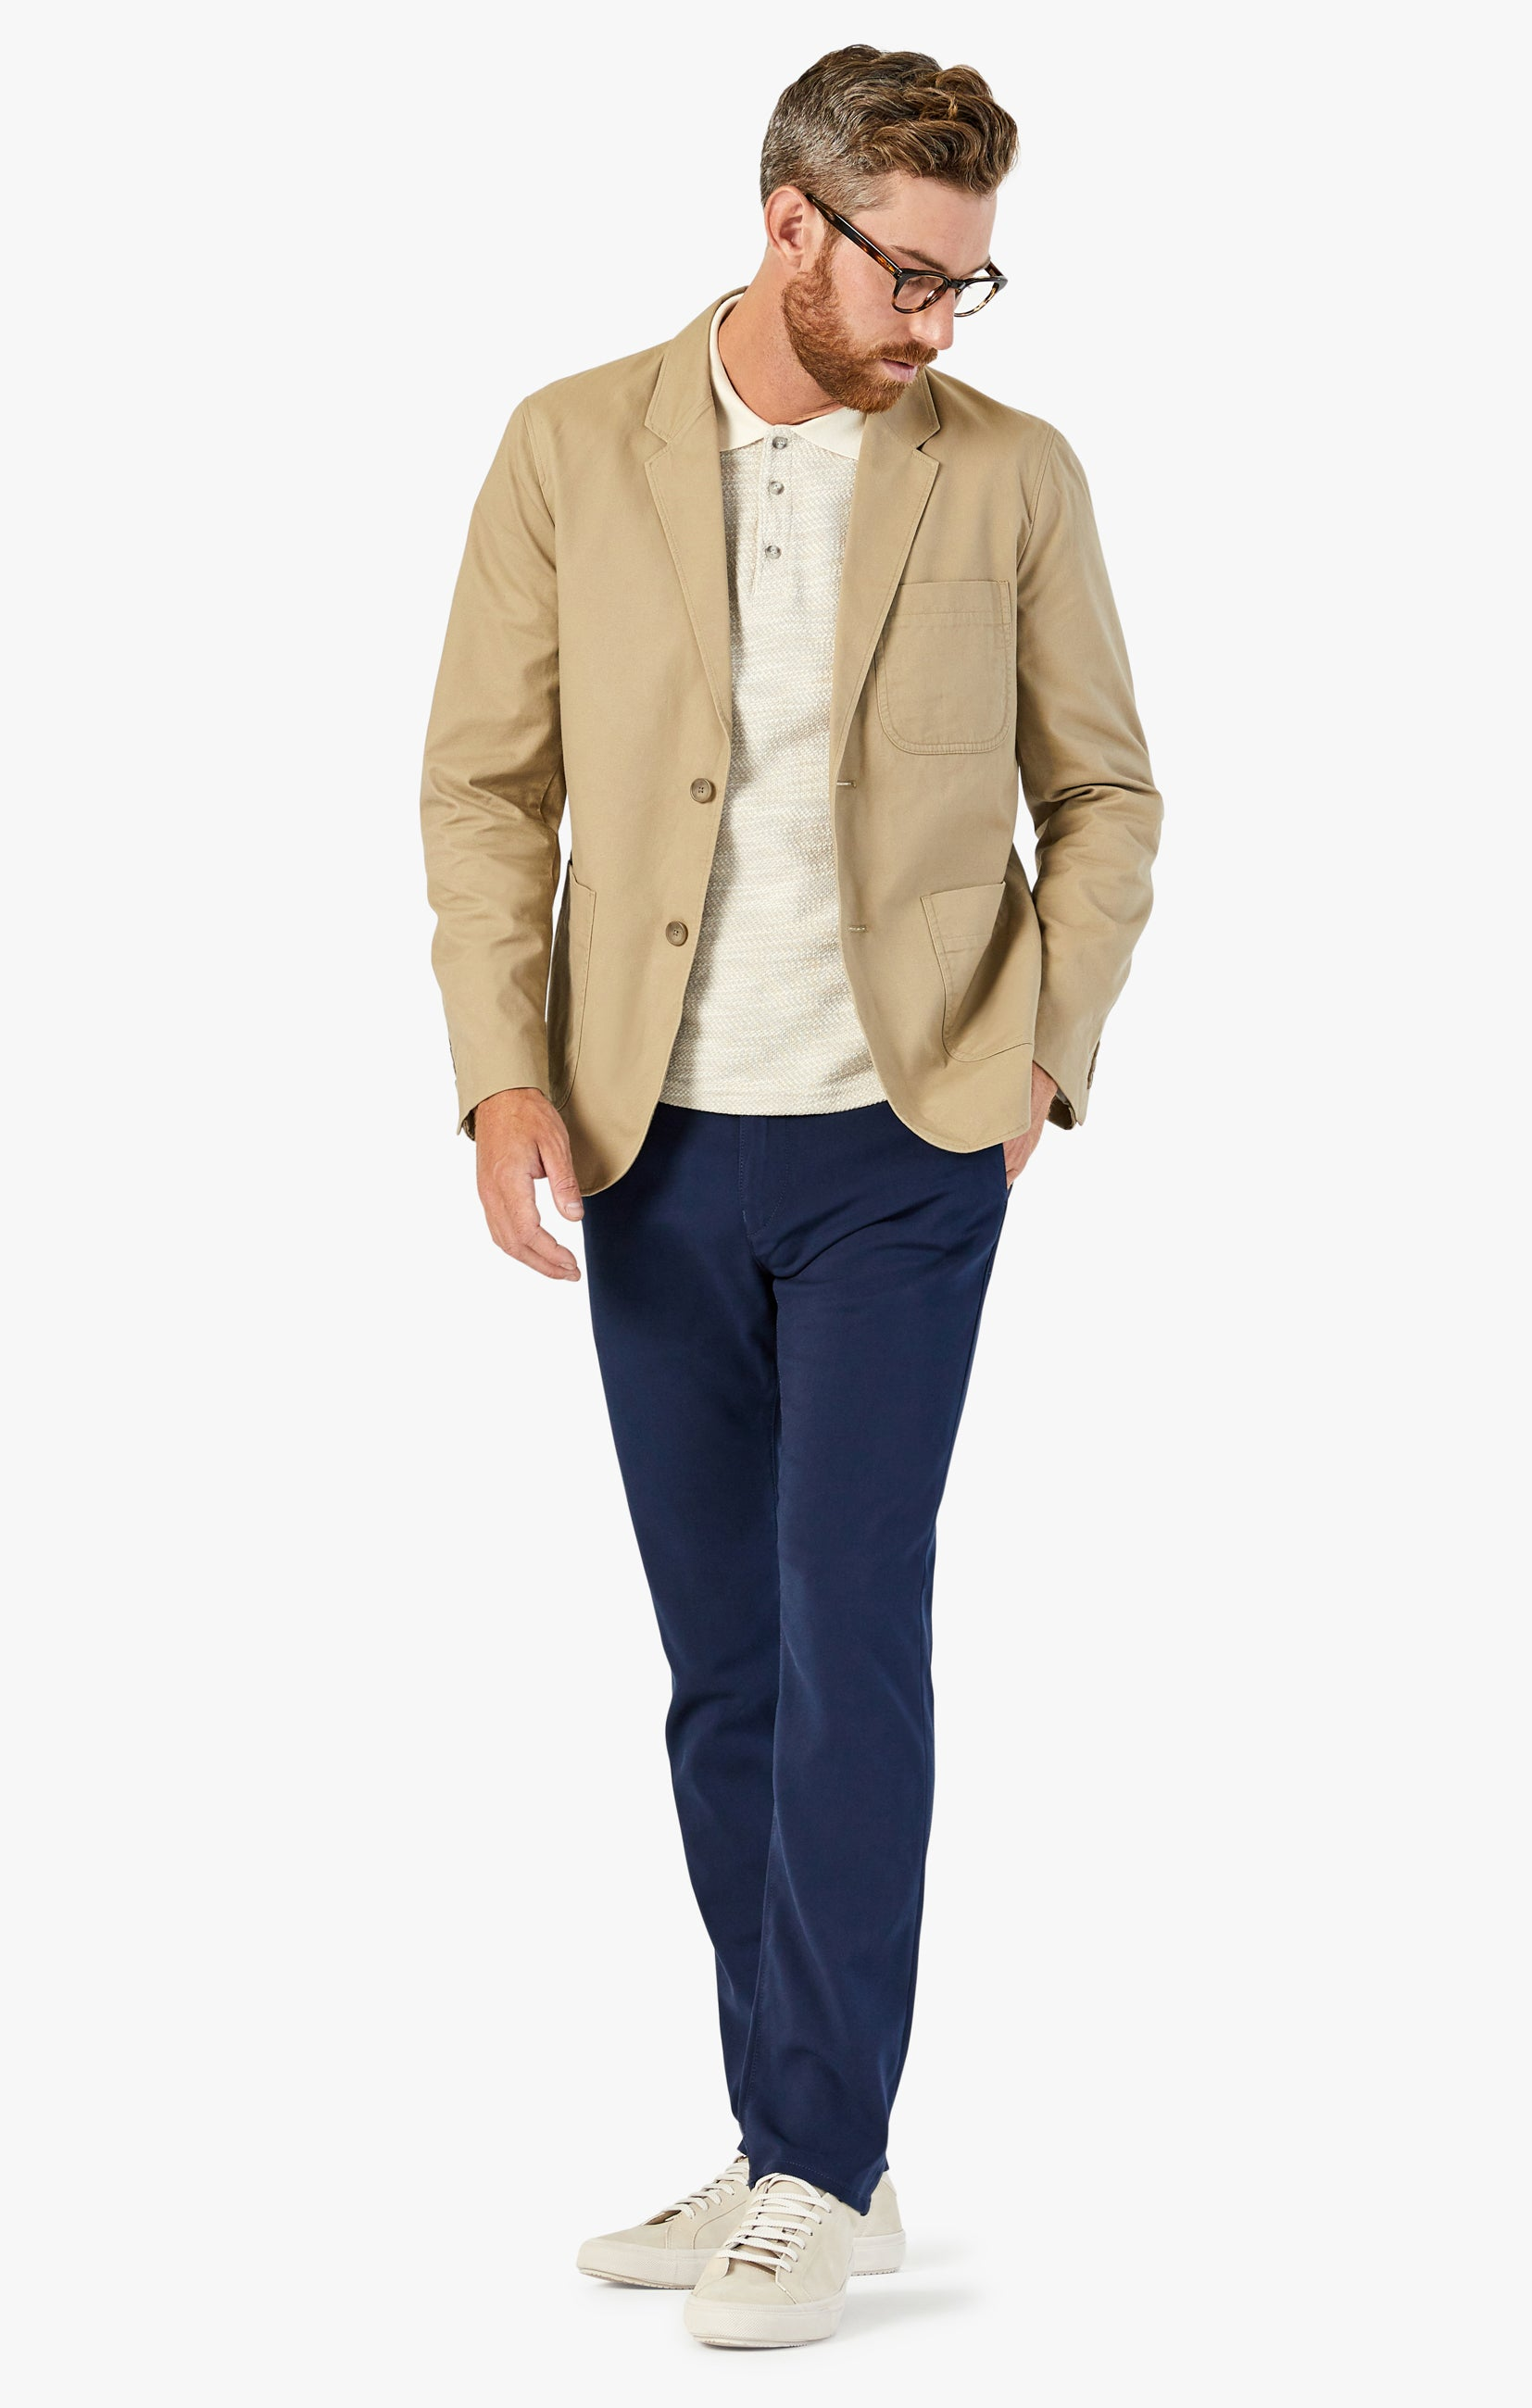 Verona Chino Pants in Navy High Flyer Image 1